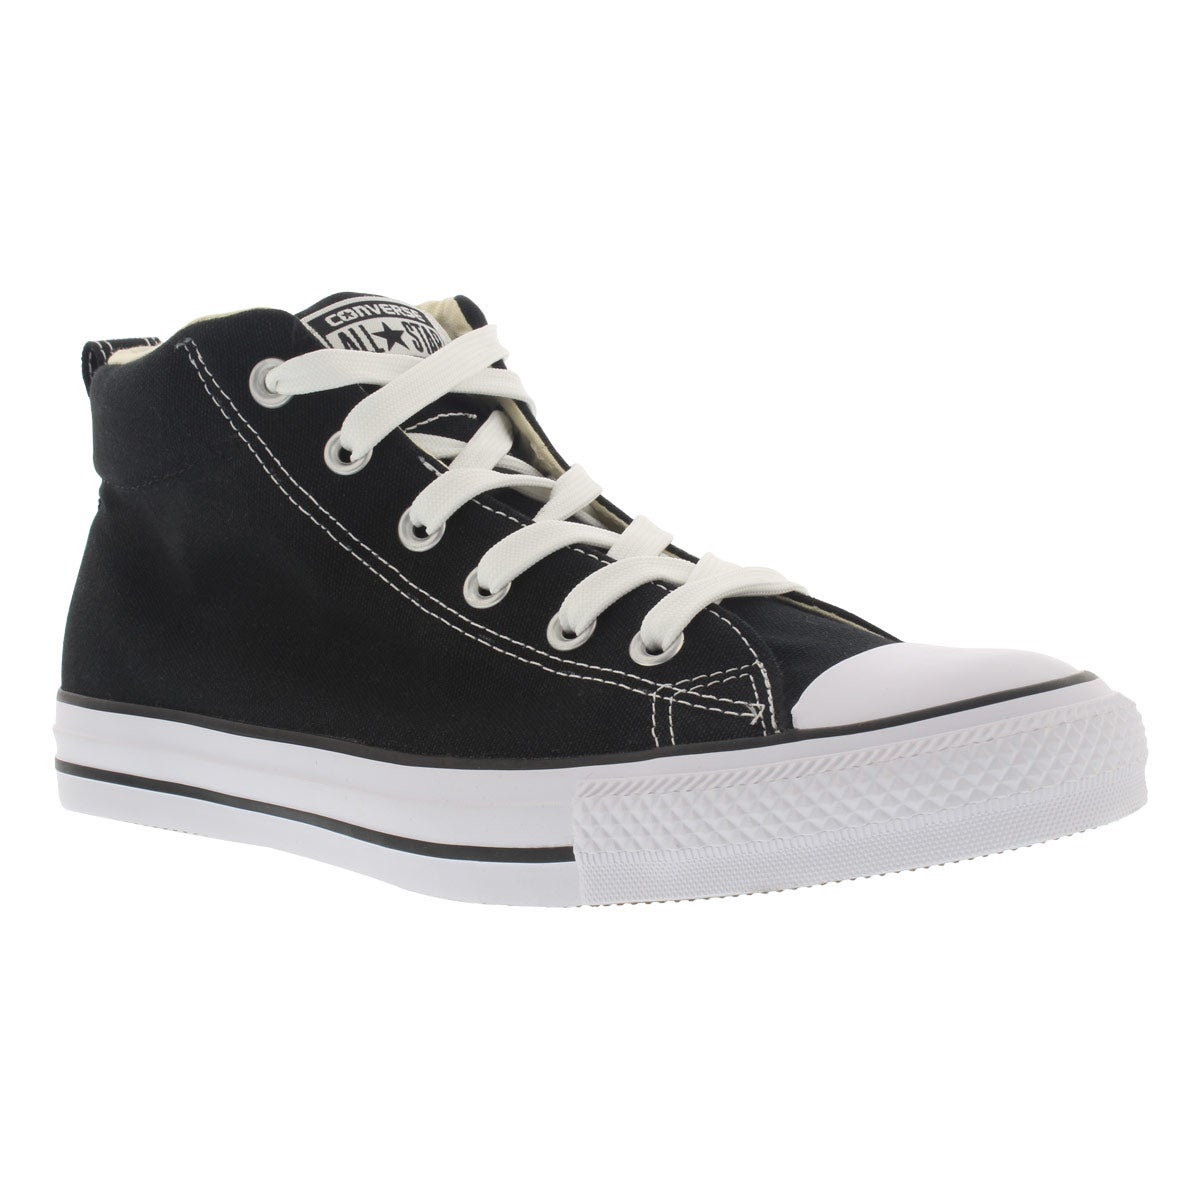 Men's CT ALL STAR STREET canvas black mid sneakers